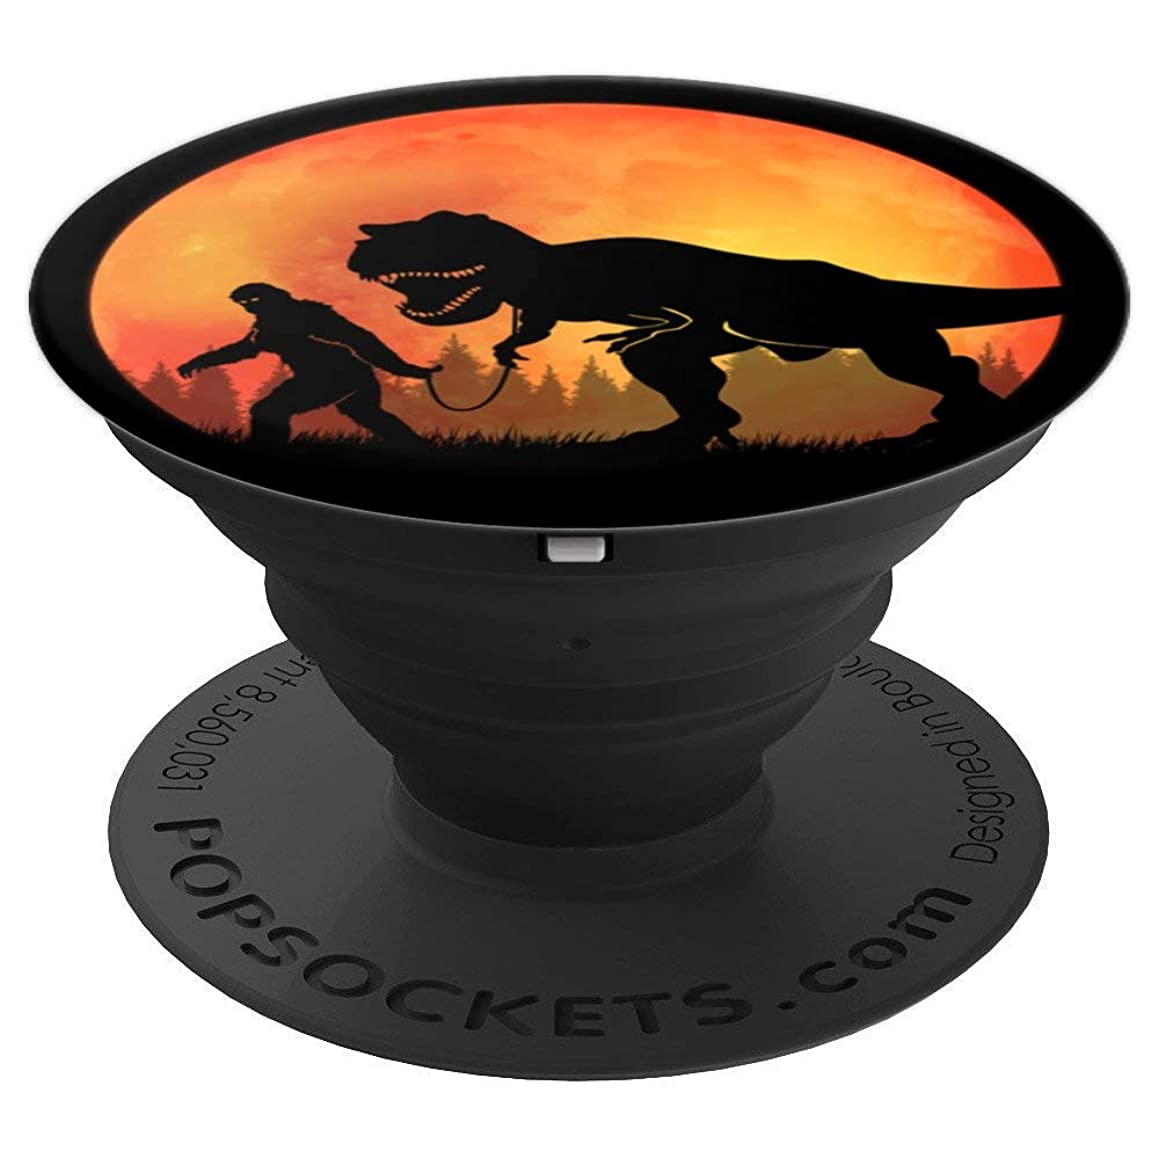 Bigfoot Walking Dinosaur Sasquatch Tyrannosaurus Rex Moon - PopSockets Grip and Stand for Phones and Tablets